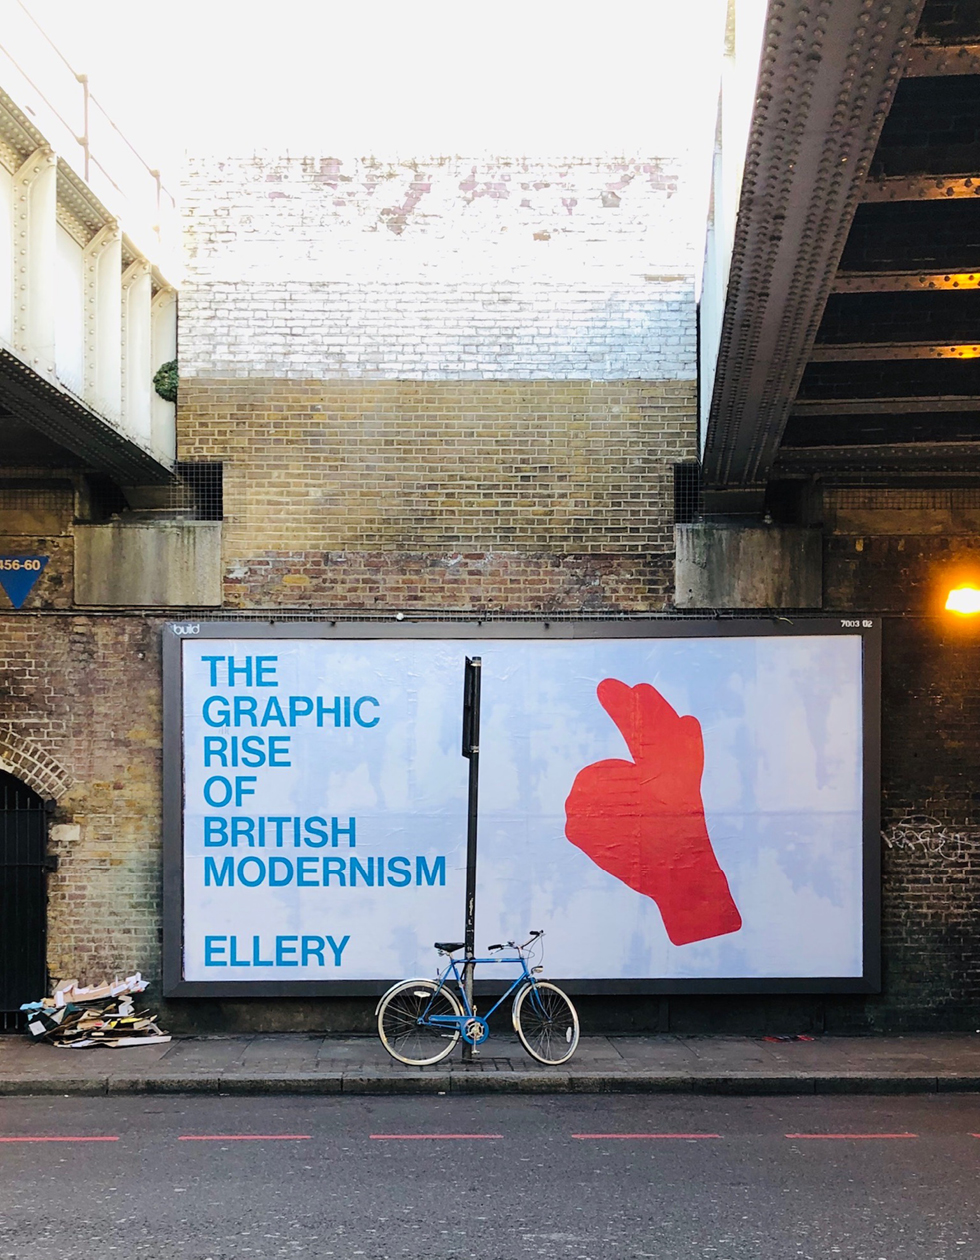 The Graphic Rise of British Modernism, Jonathan Ellery, 2019